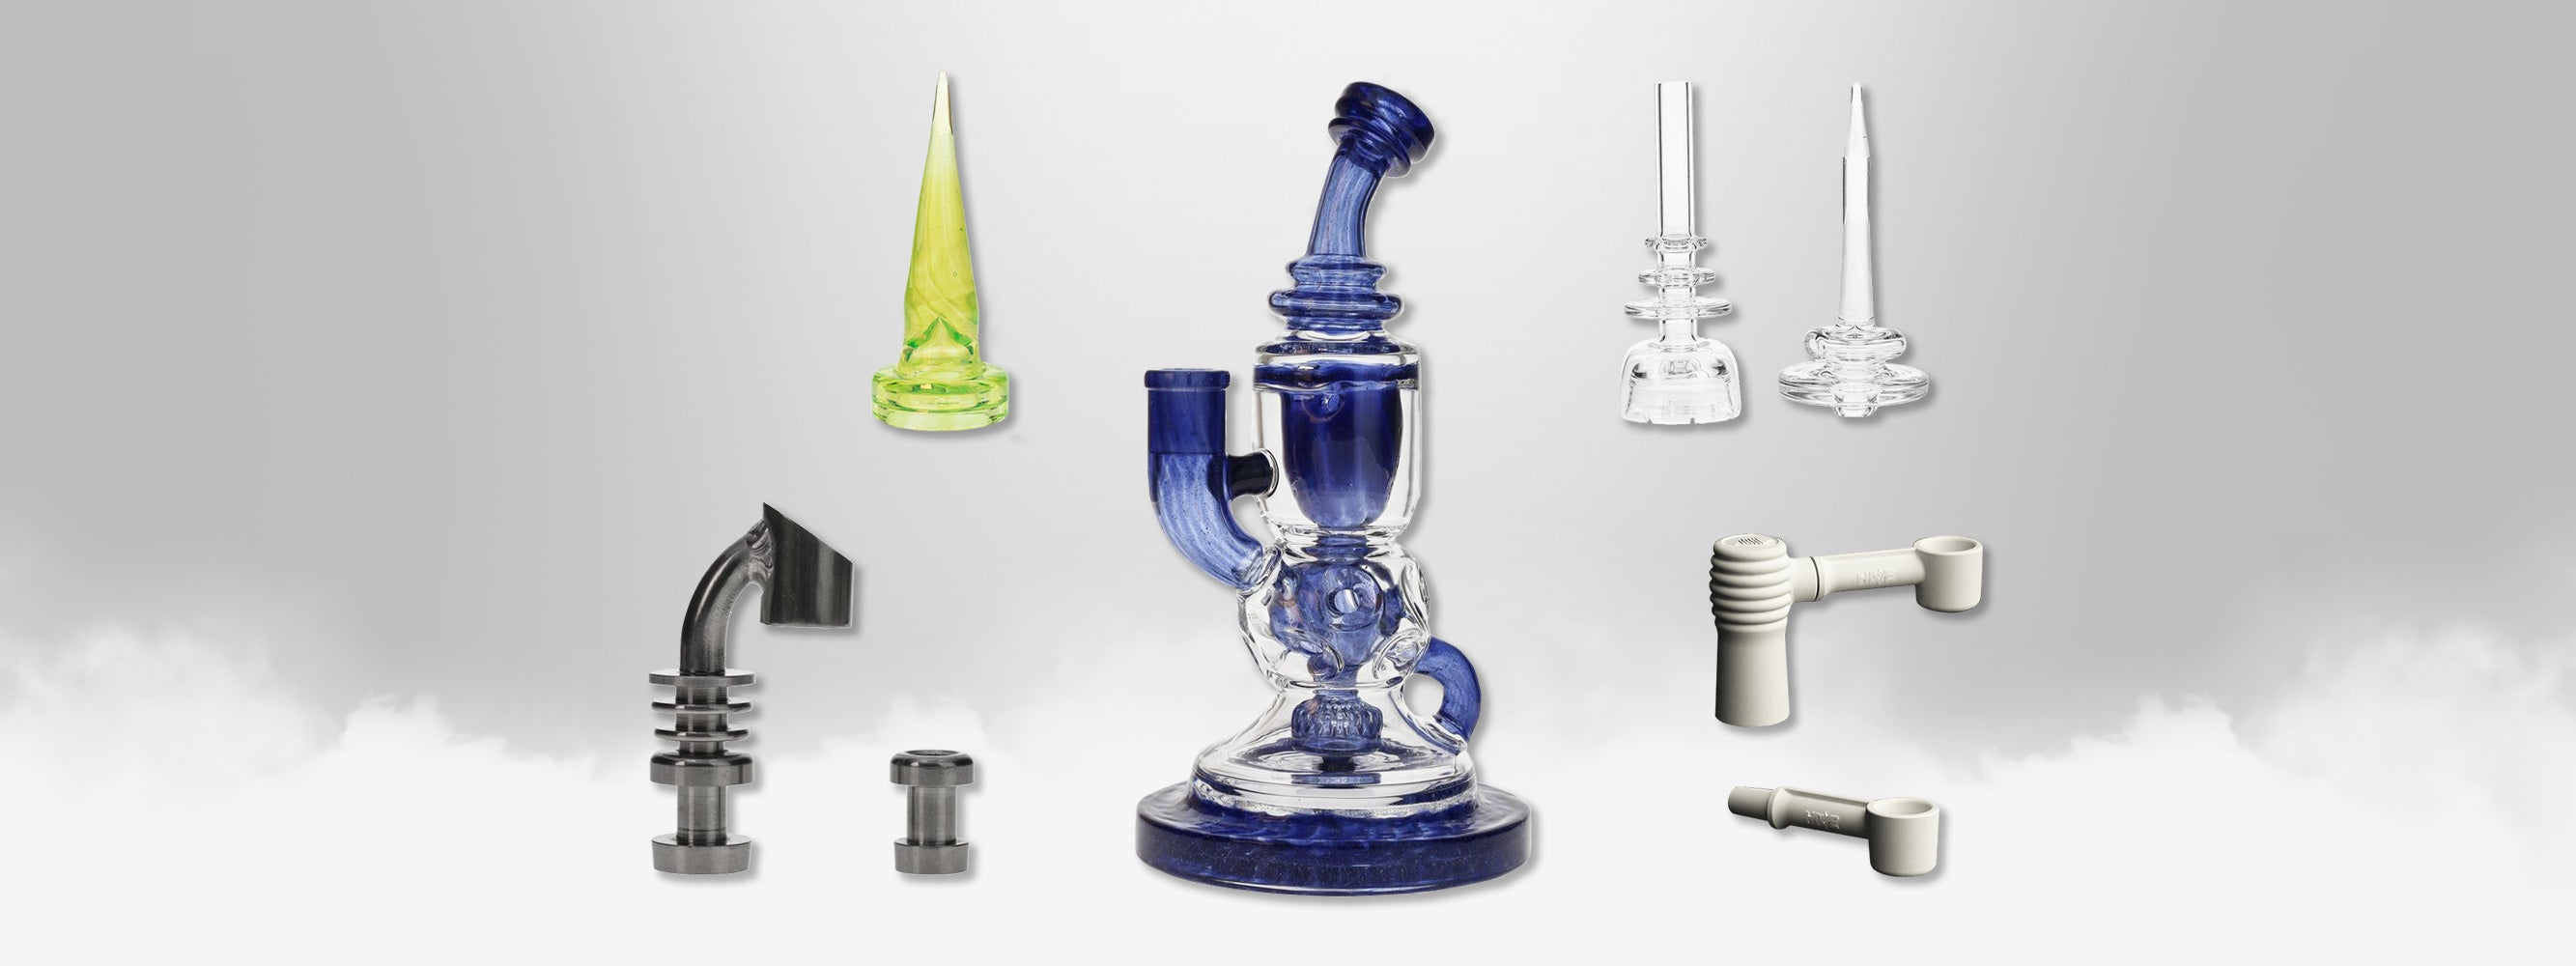 Tips for Dab Rigs